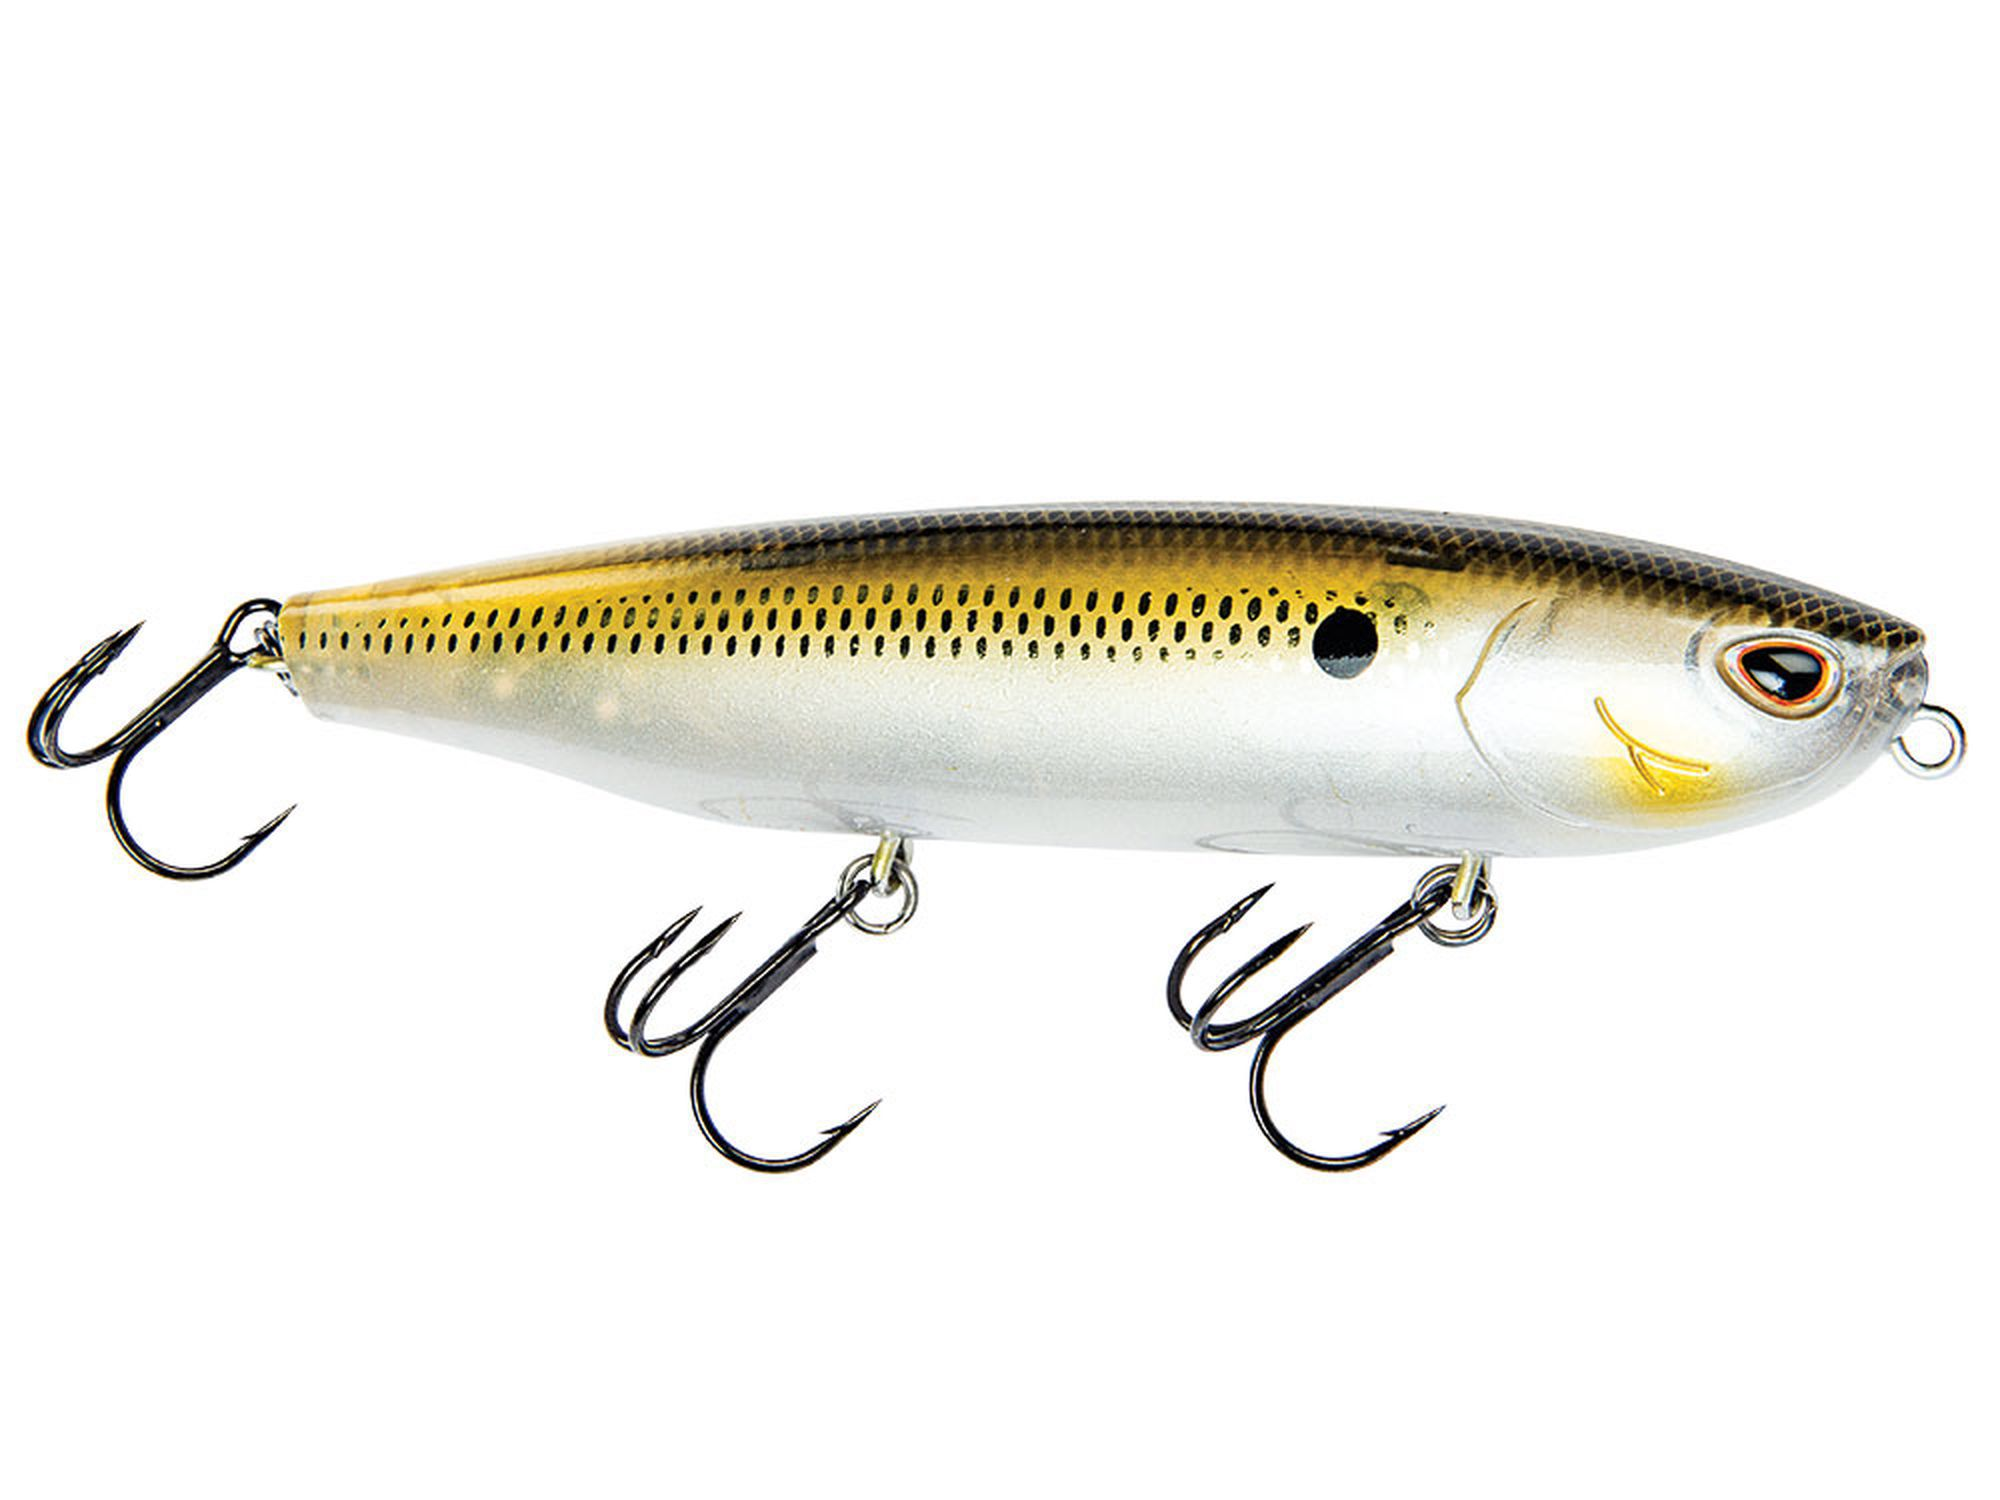 10 Best Topwater Lures For Bass | Outdoor Life